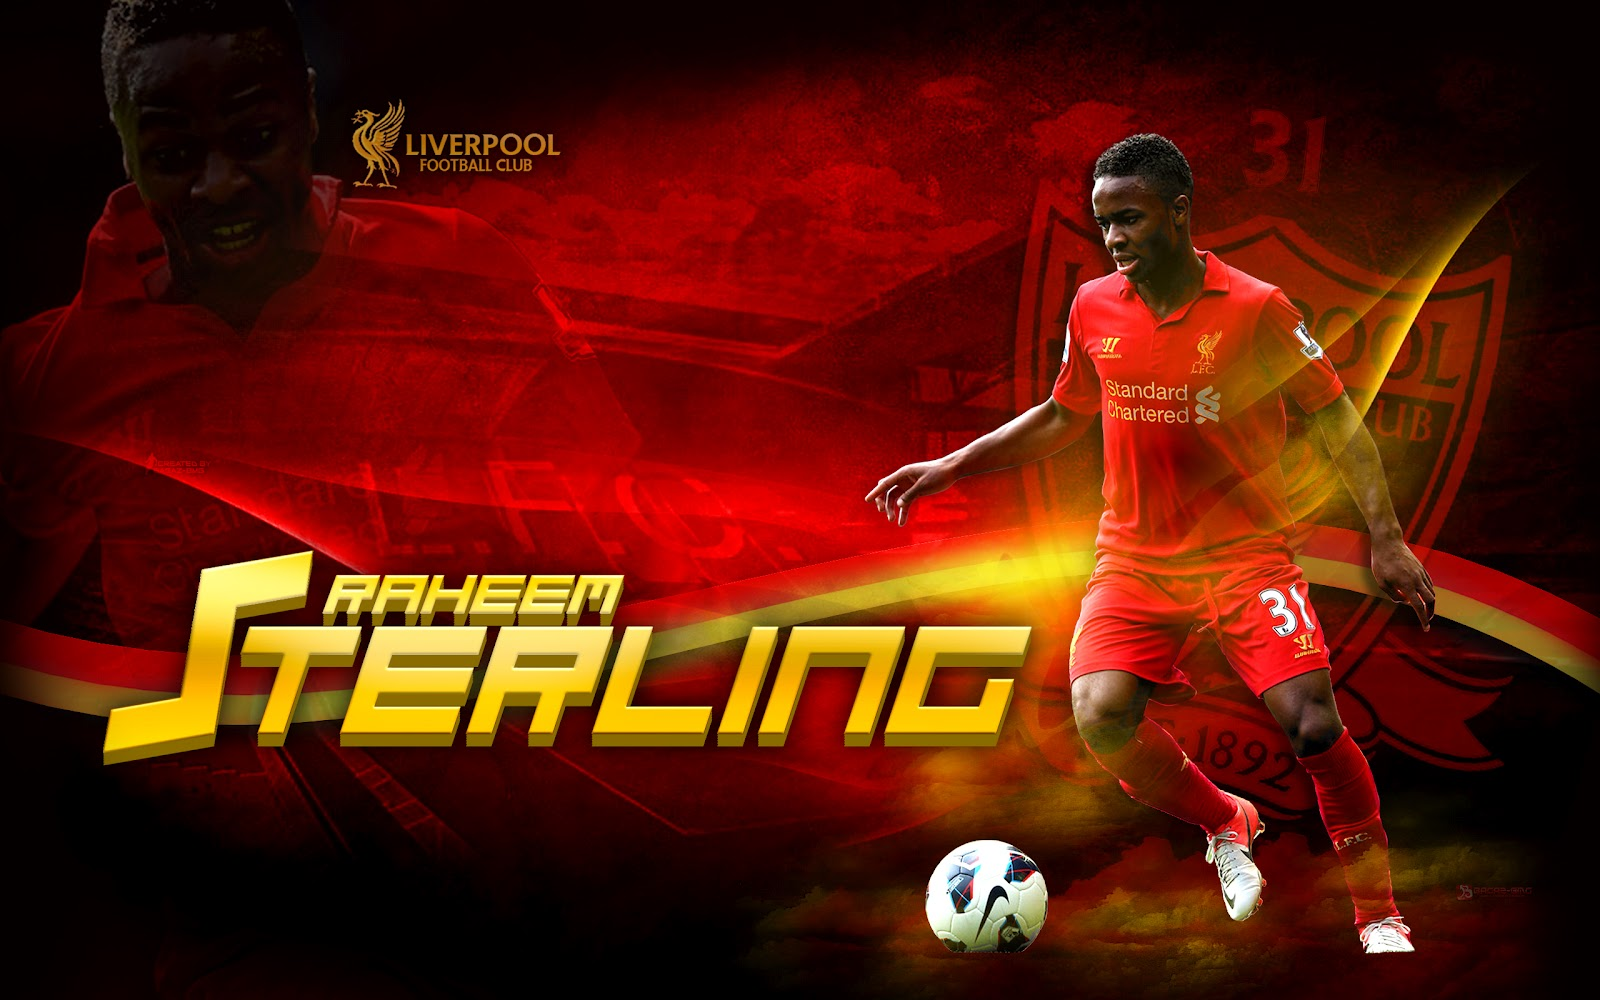 Sterling Liverpool Wallpaper HD 2013 Football Wallpaper HD Football 1600x1000